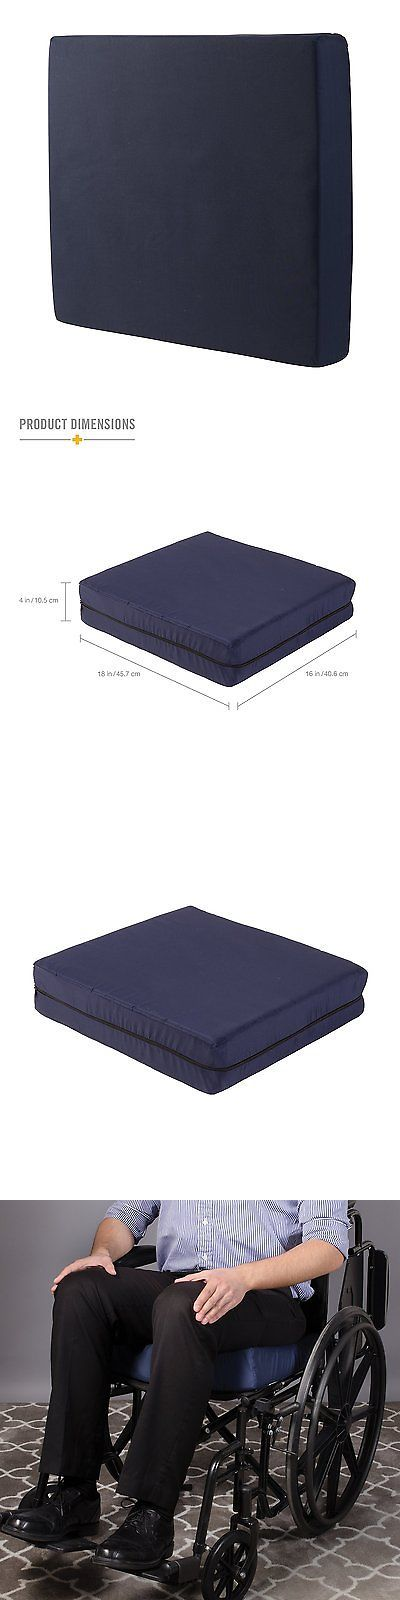 Accessories: Duro-Med Foam Seat Wheelchair Cushion With Cover Navy 4 Inch X 16 Inch X 18 Inch BUY IT NOW ONLY: $32.39